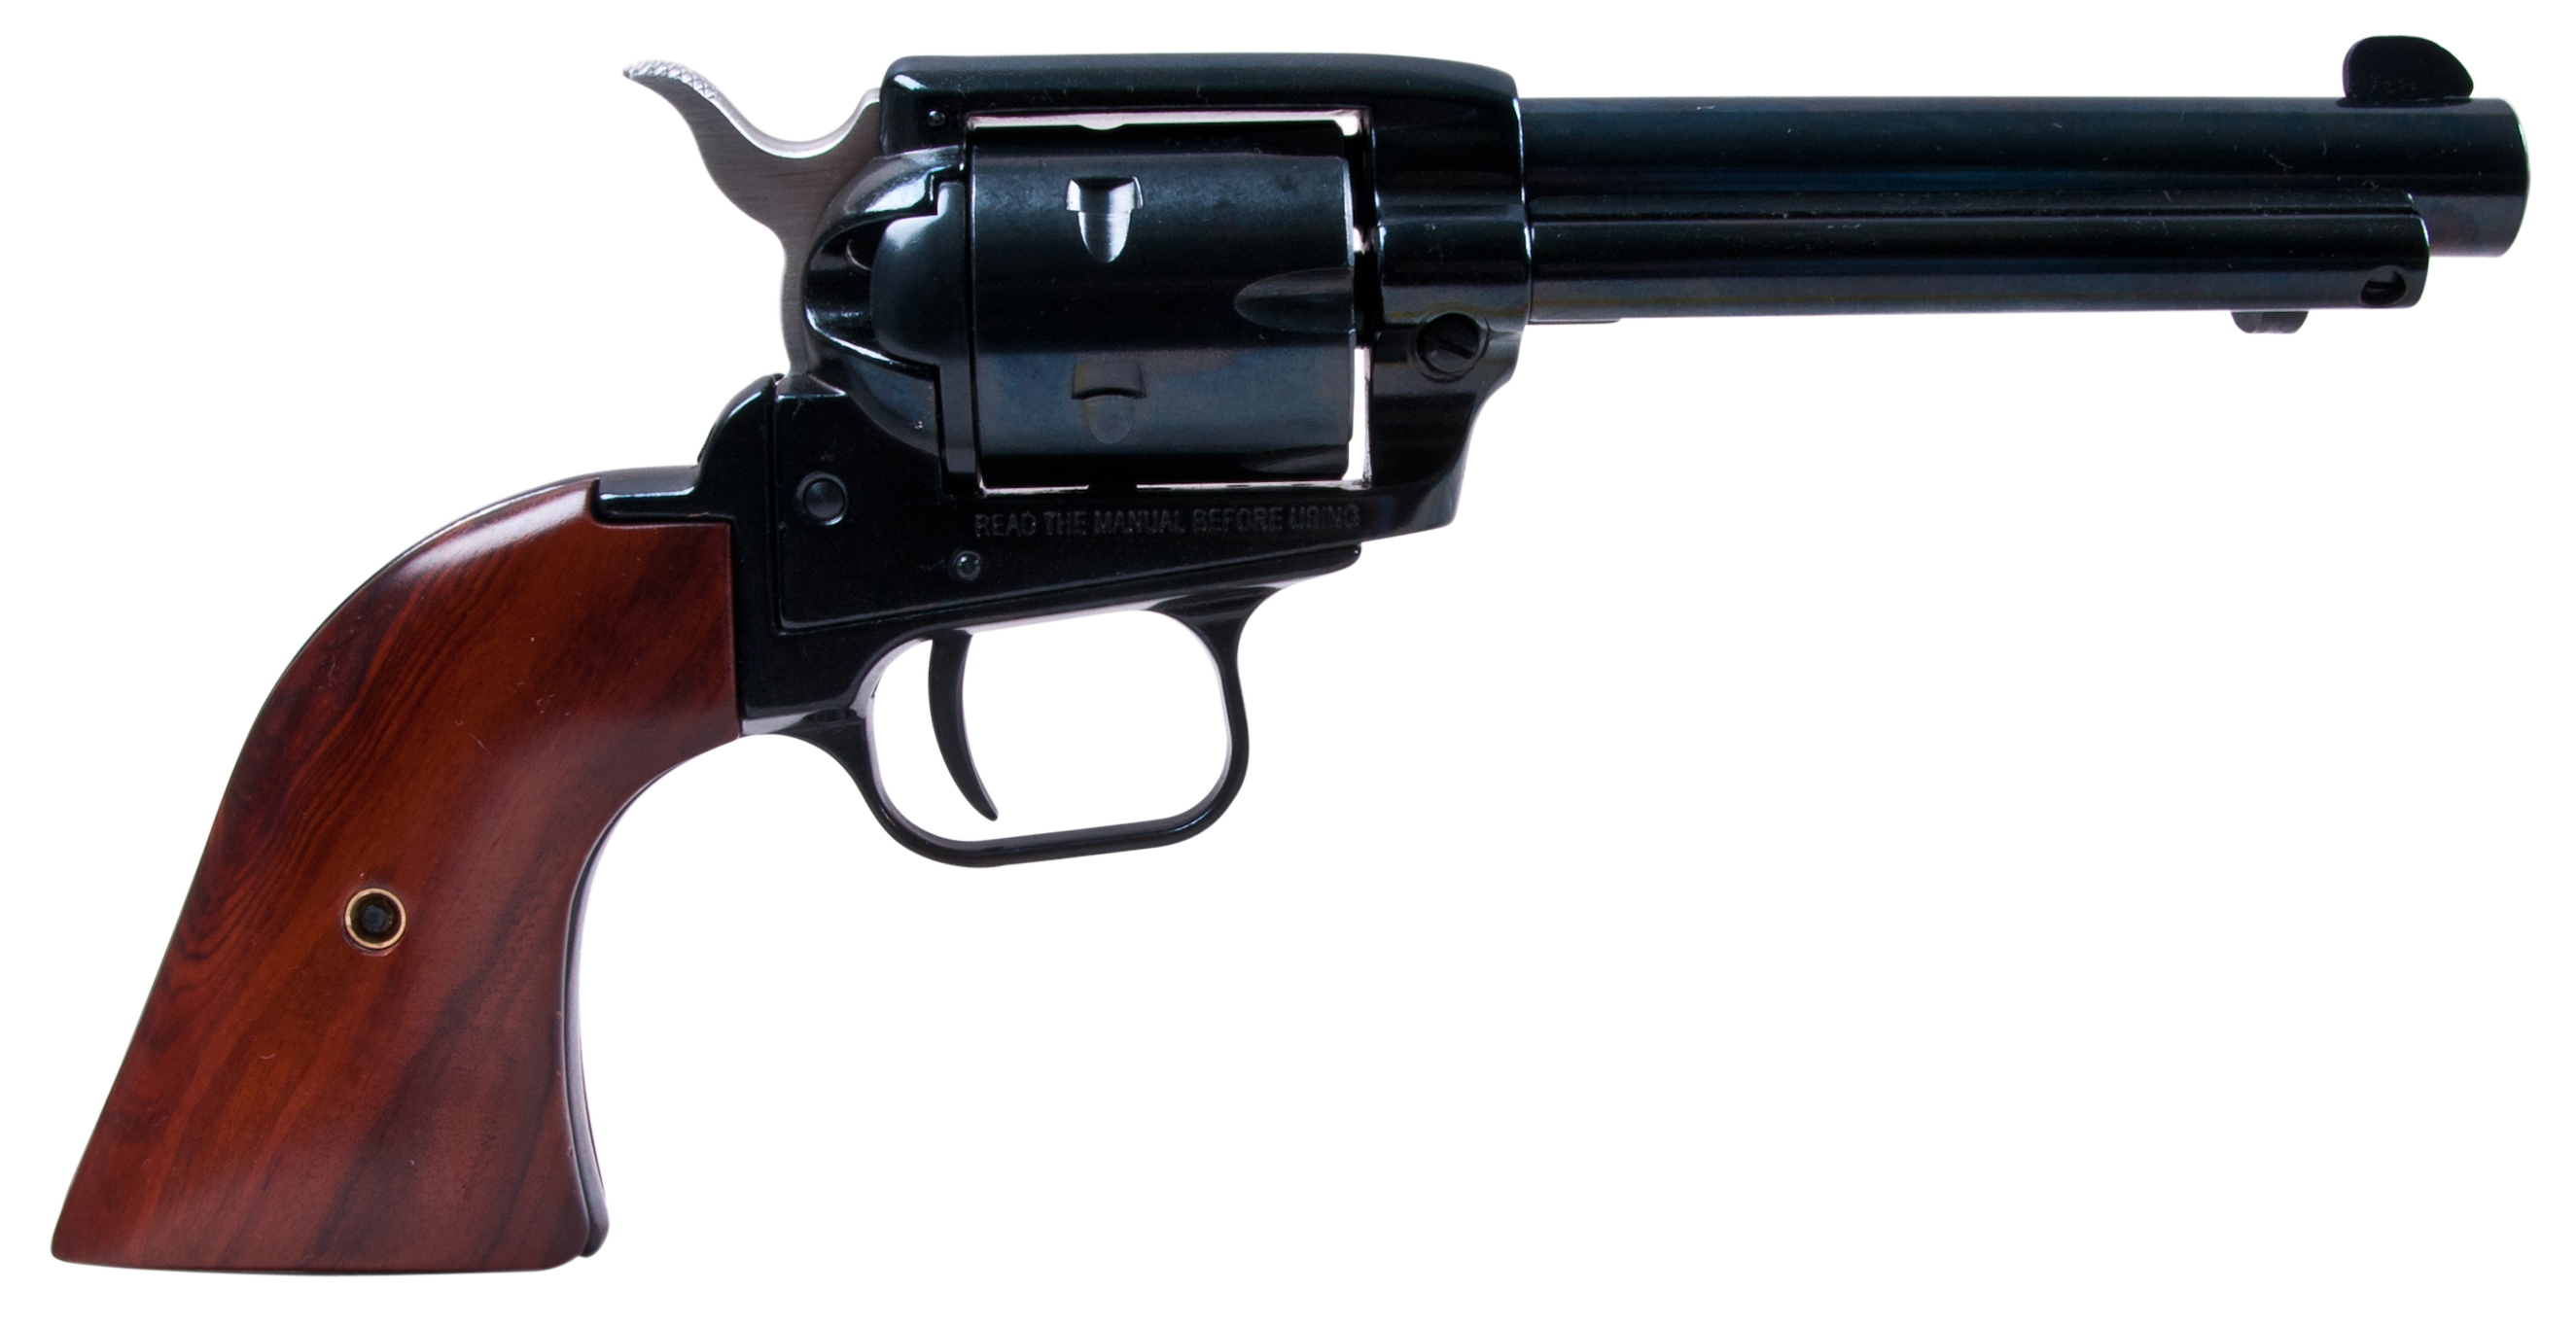 Heritage Mfg RR22MB4 Rough Rider Small Bore Single 22 Long Rifle (LR) w/22 WMR Cylinder 4.75